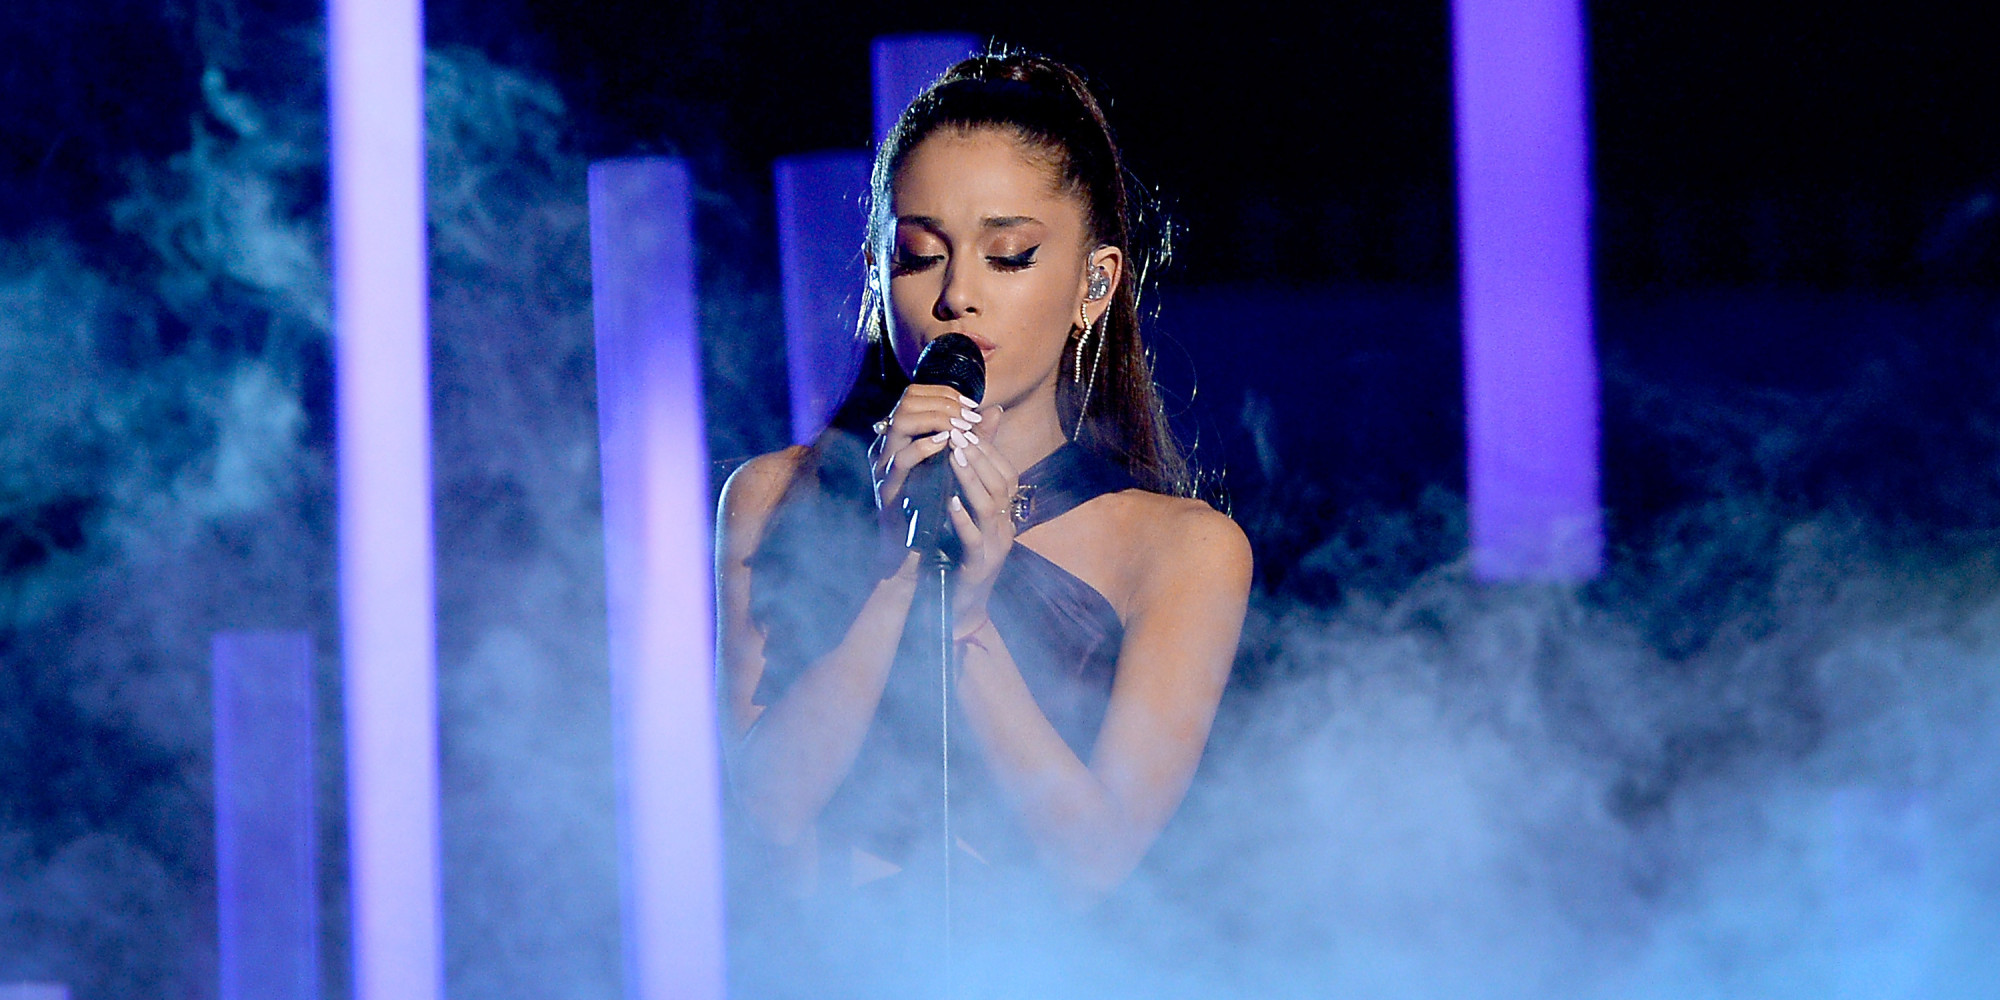 ariana grande performs 'just a little bit of your heart' at the 2015